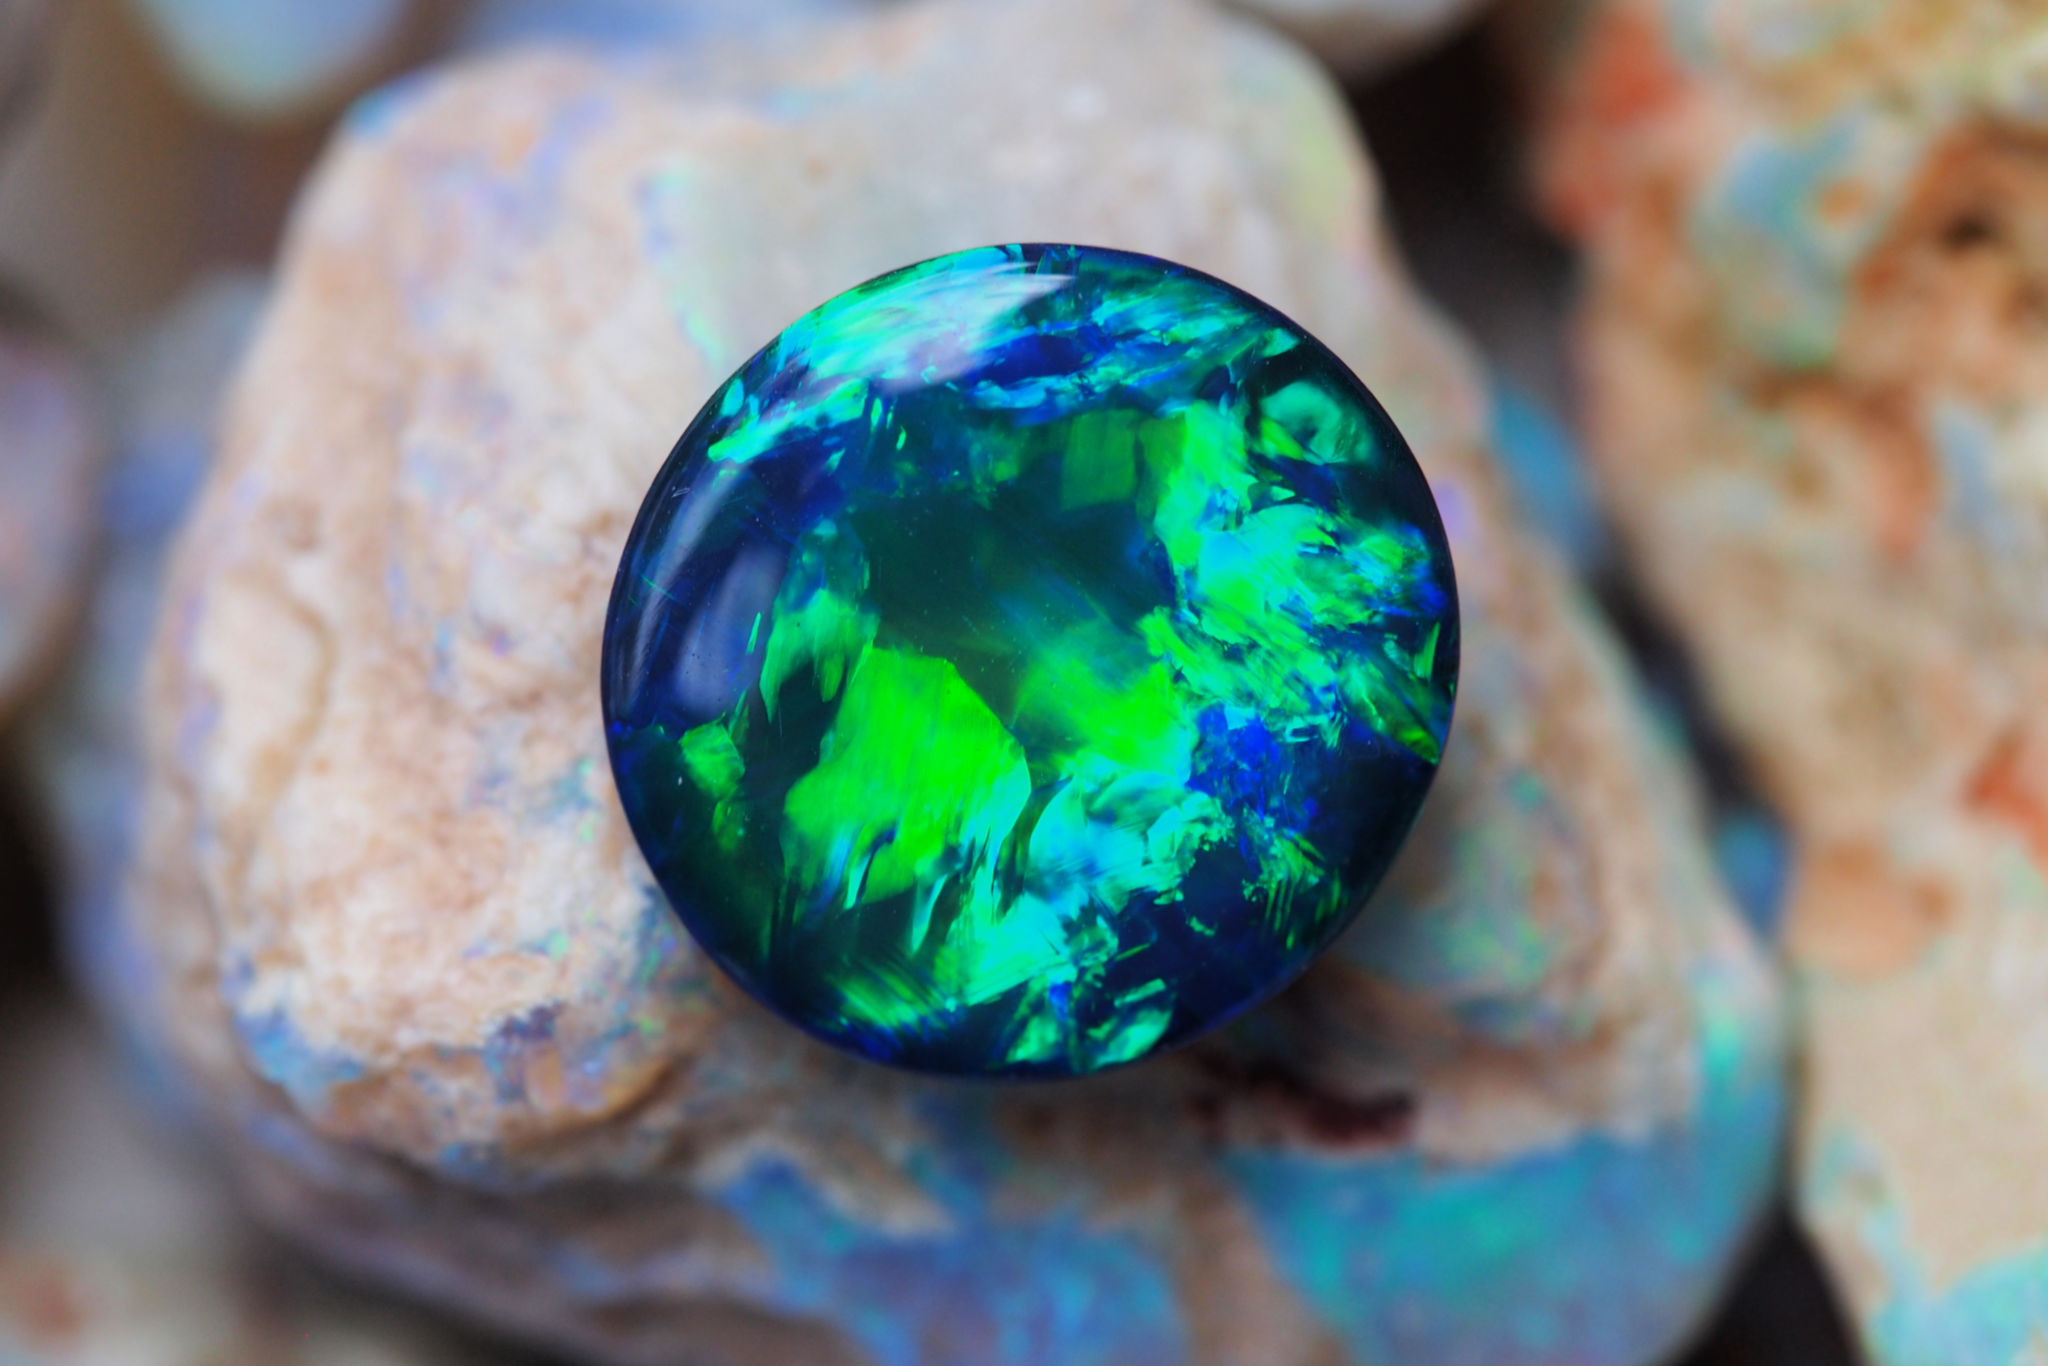 Black Opal - Found mainly at the opal fields of Lightning Ridge, NSW, Black Opal is the most magnificent and valuable type of Australian opal. Ablaze with vibrant colour, this high quality gemstone is extremely rare and can be distinguished by the darkness of its background body tone or body colour, which ranges from dark grey to jet black.